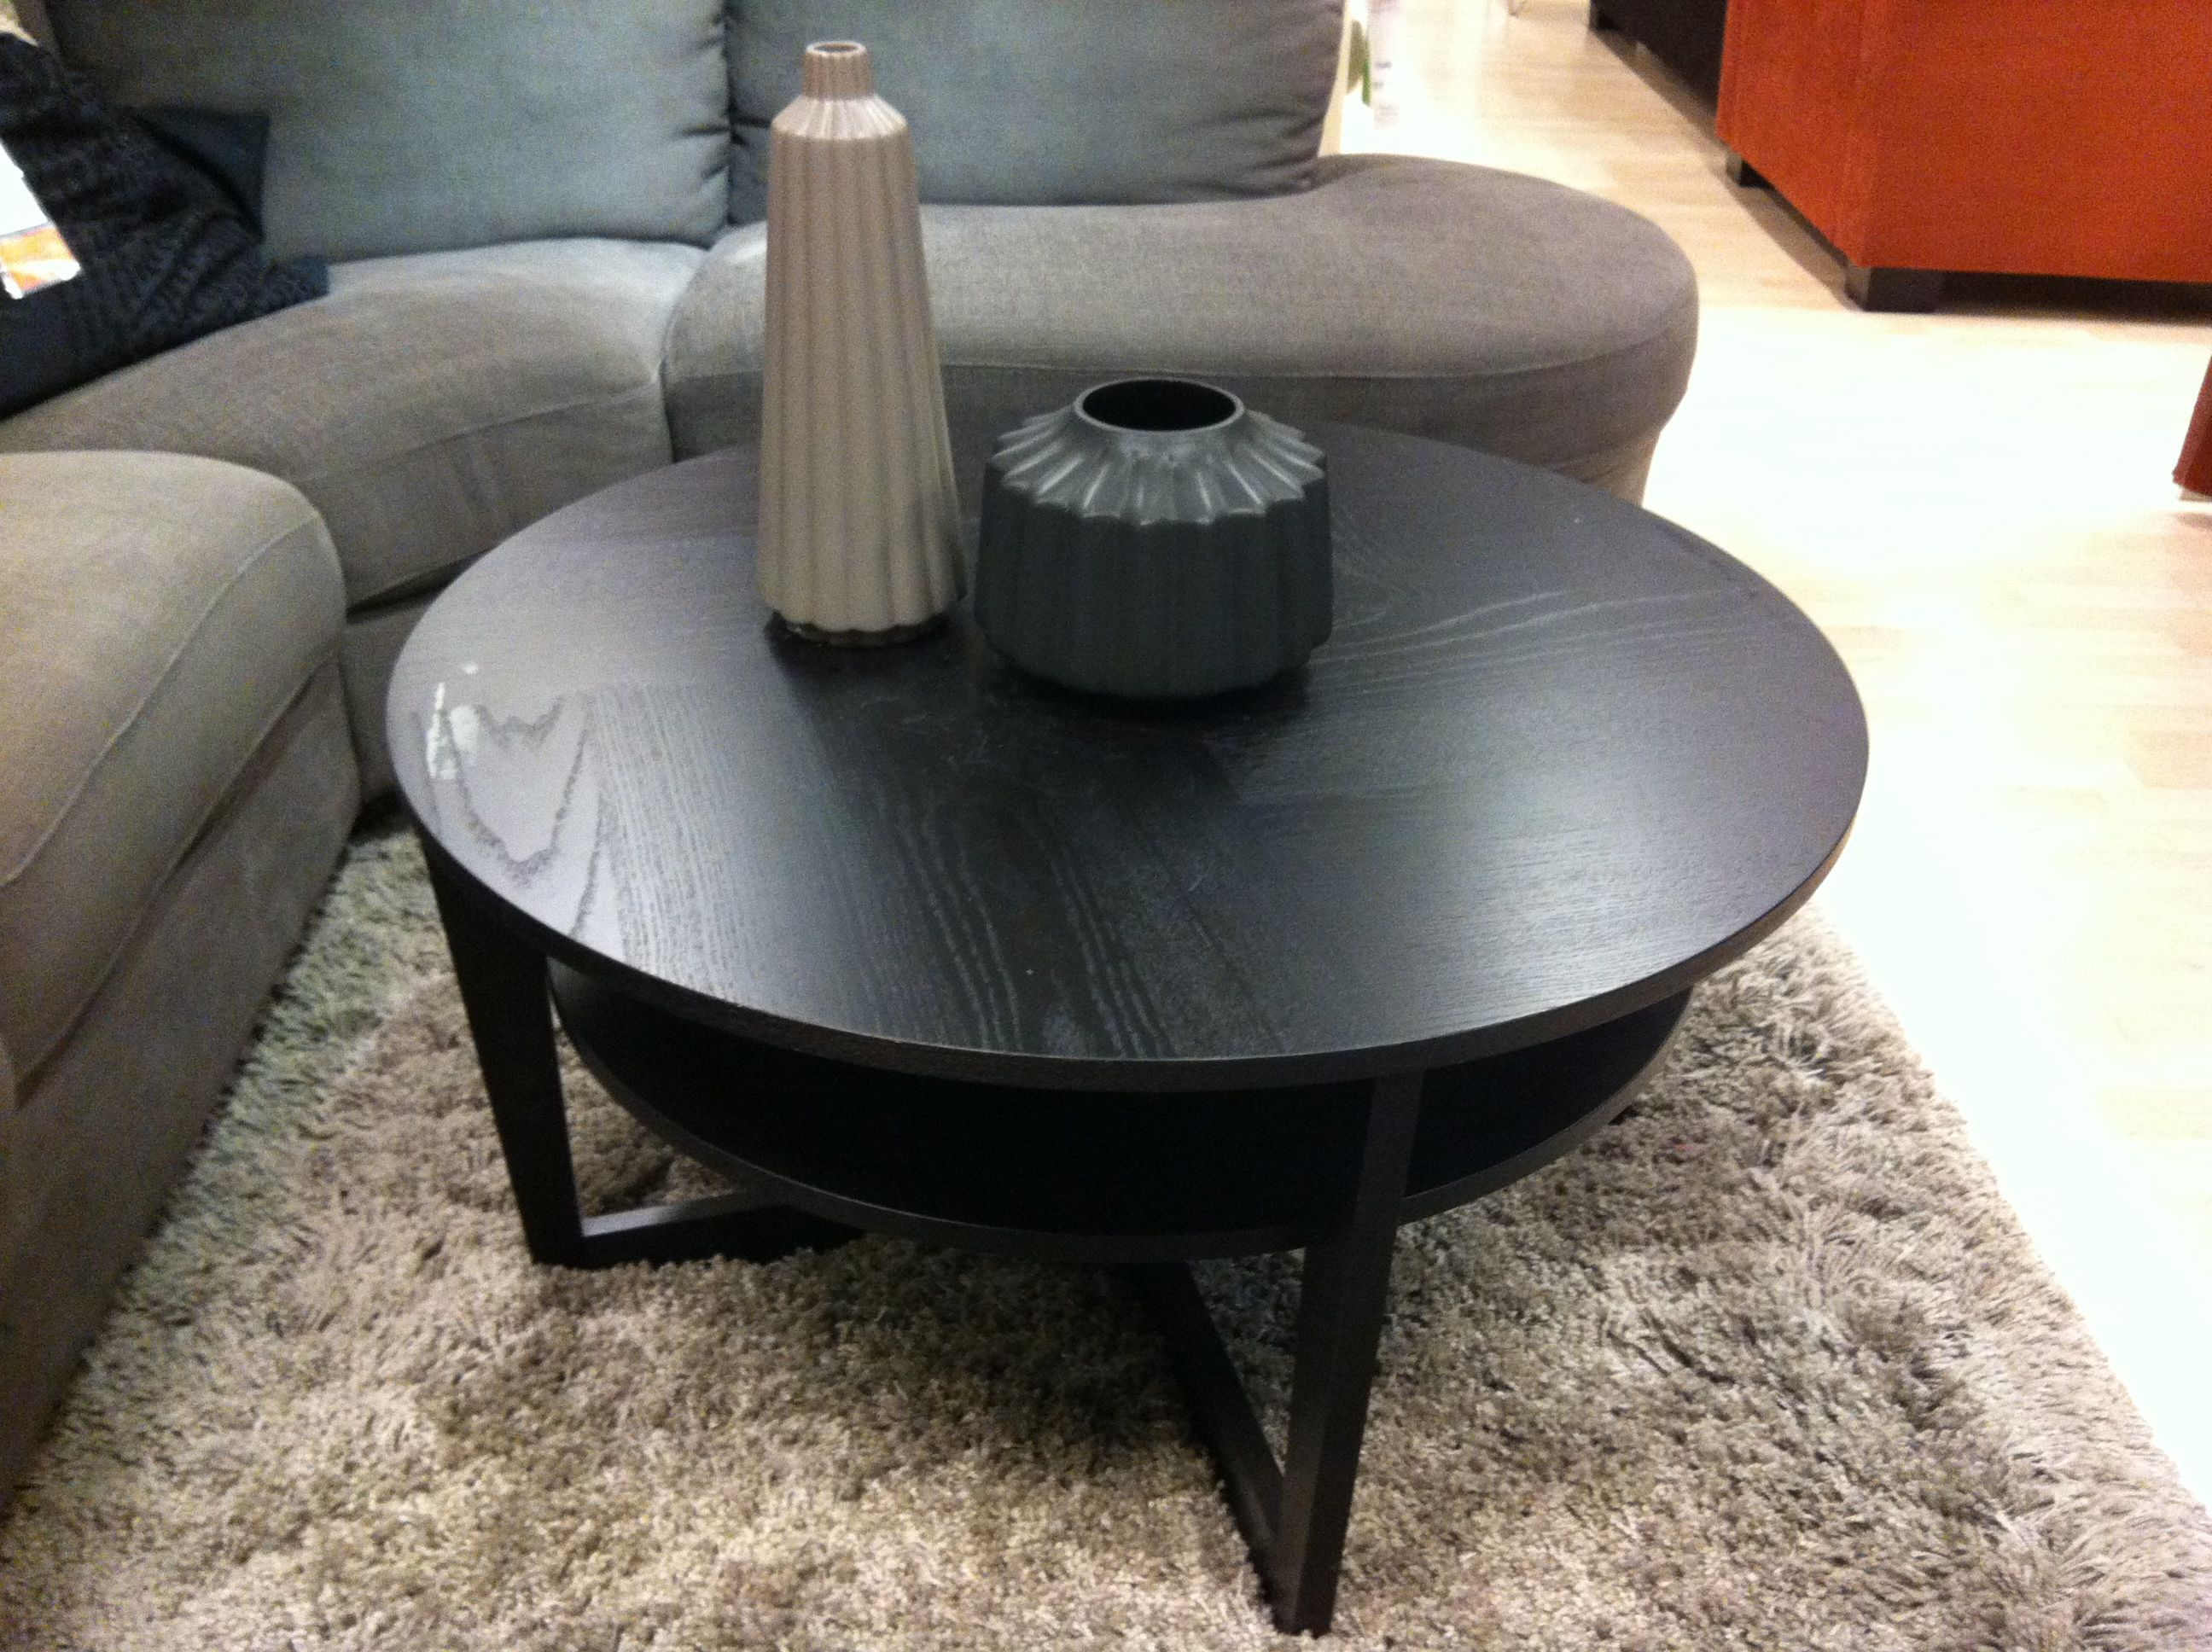 Ikea Round Wood Coffee Table Ck Collection Pinterest Woods Coffee And Tables